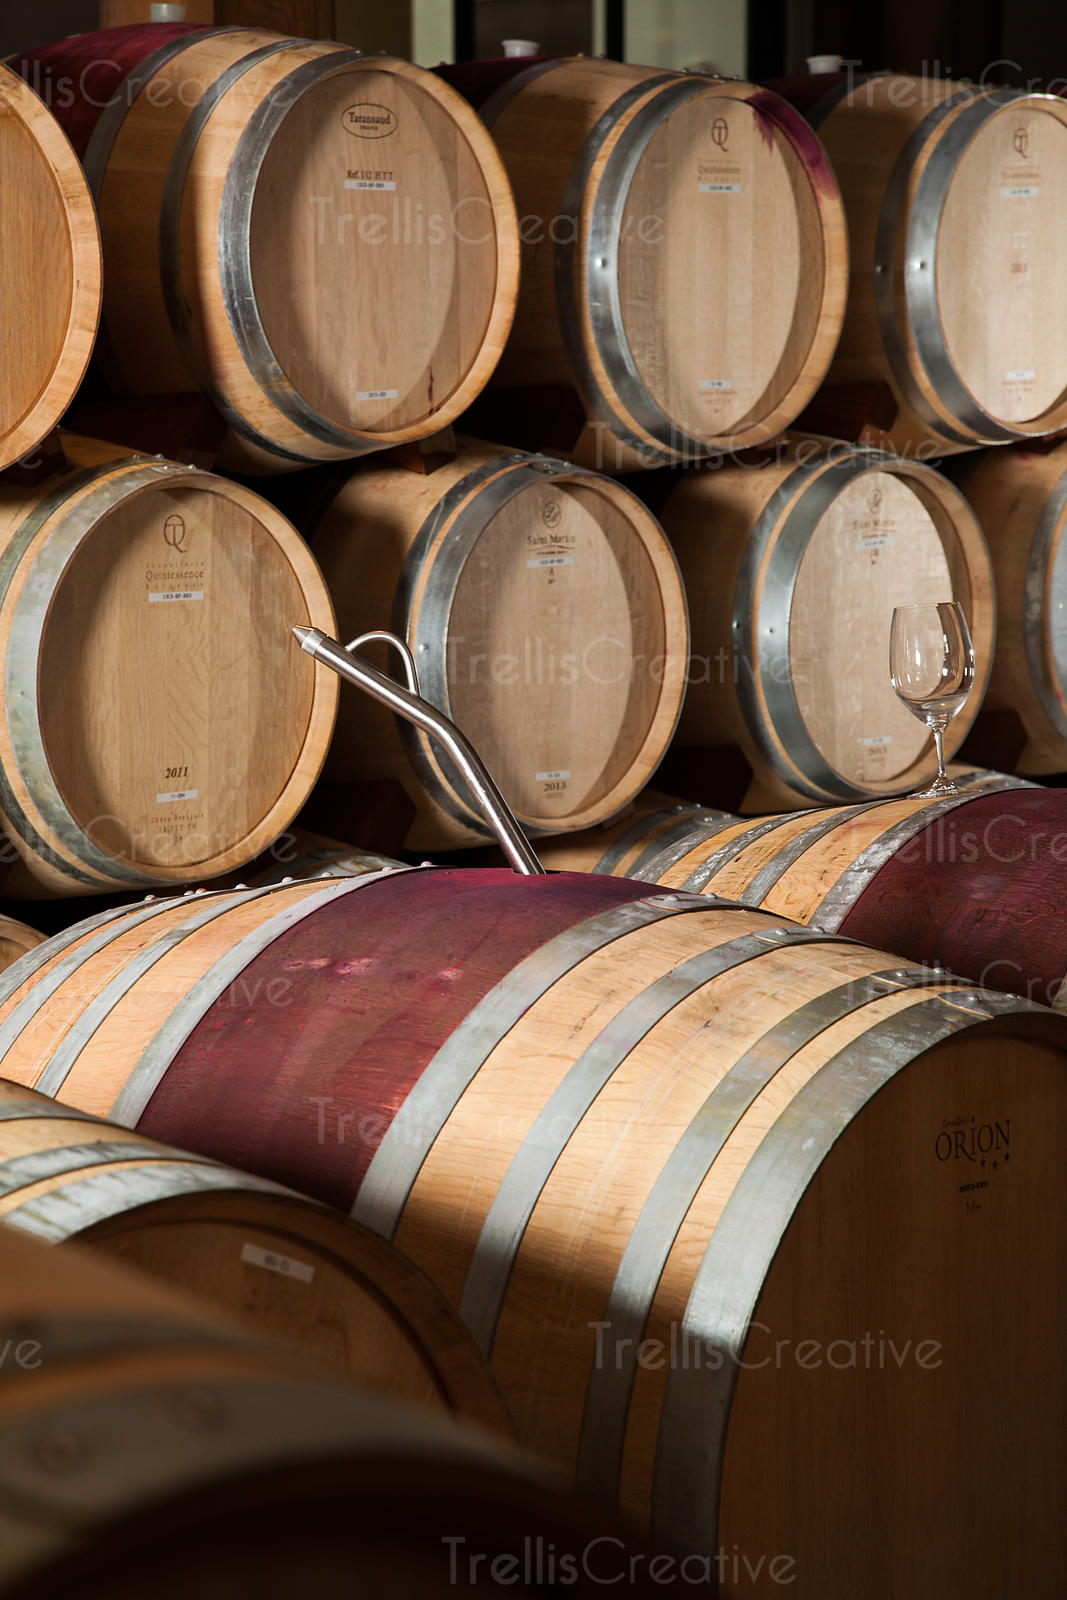 A winemaker's thief in an oak barrel inside of a winery cellar